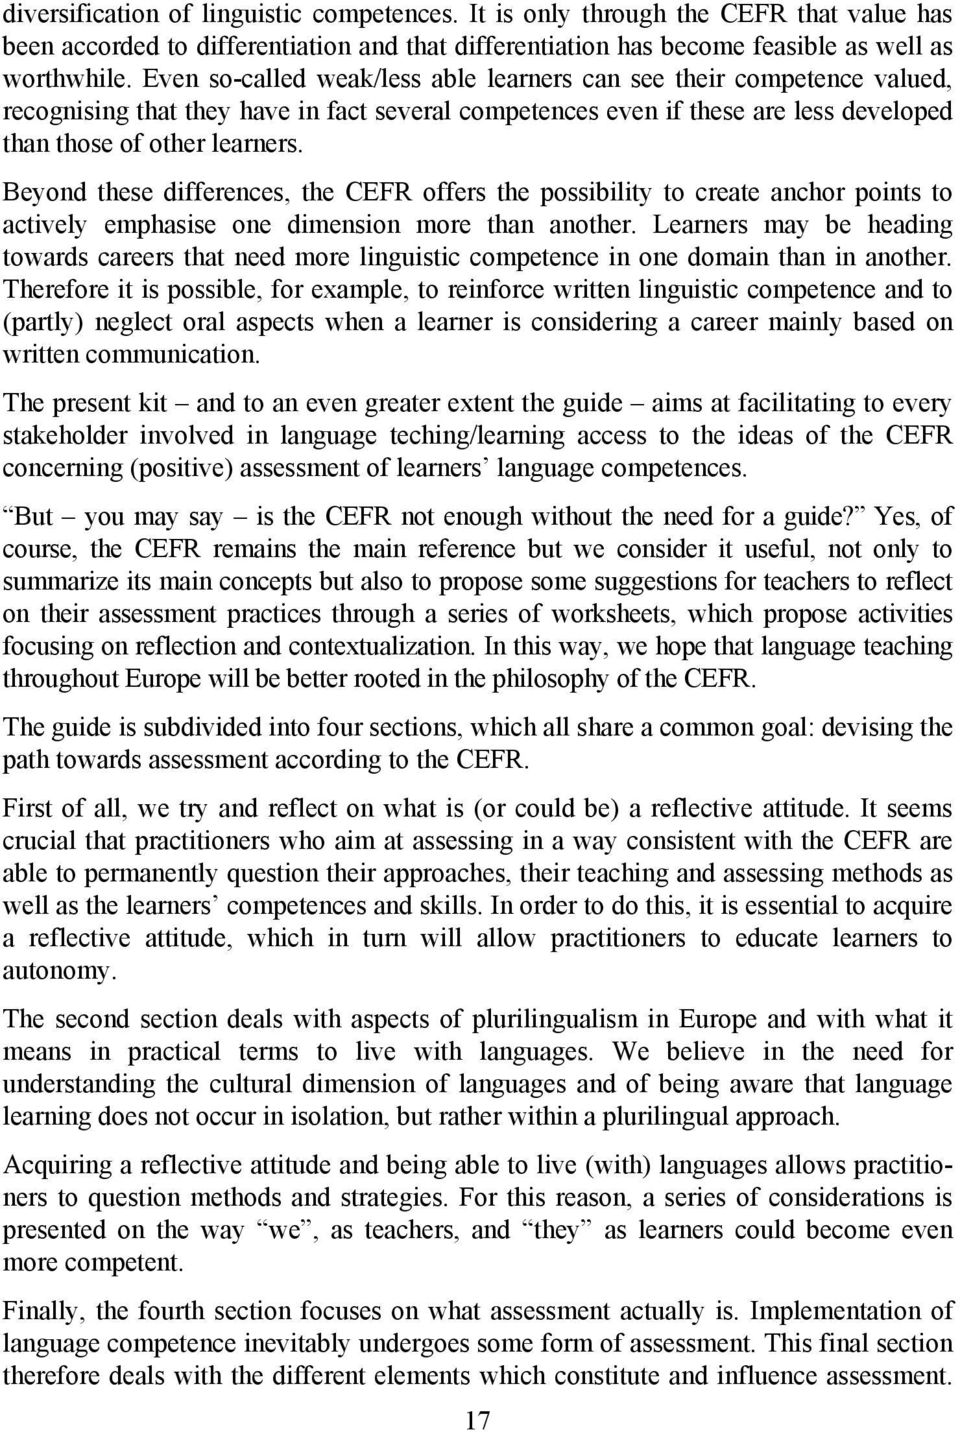 Beyond these differences, the CEFR offers the possibility to create anchor points to actively emphasise one dimension more than another.